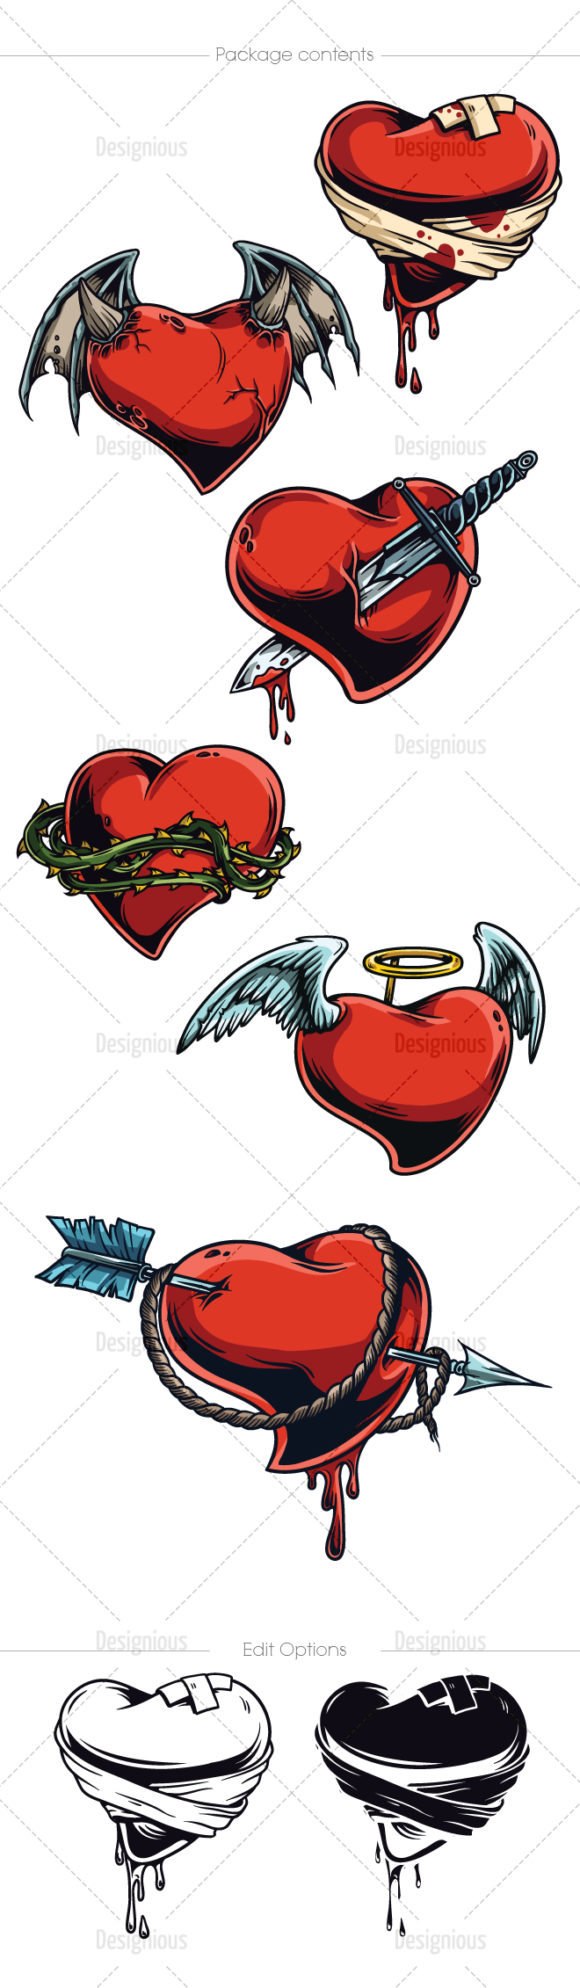 Hearts Vector Pack 6 products designious vector hearts 6 large